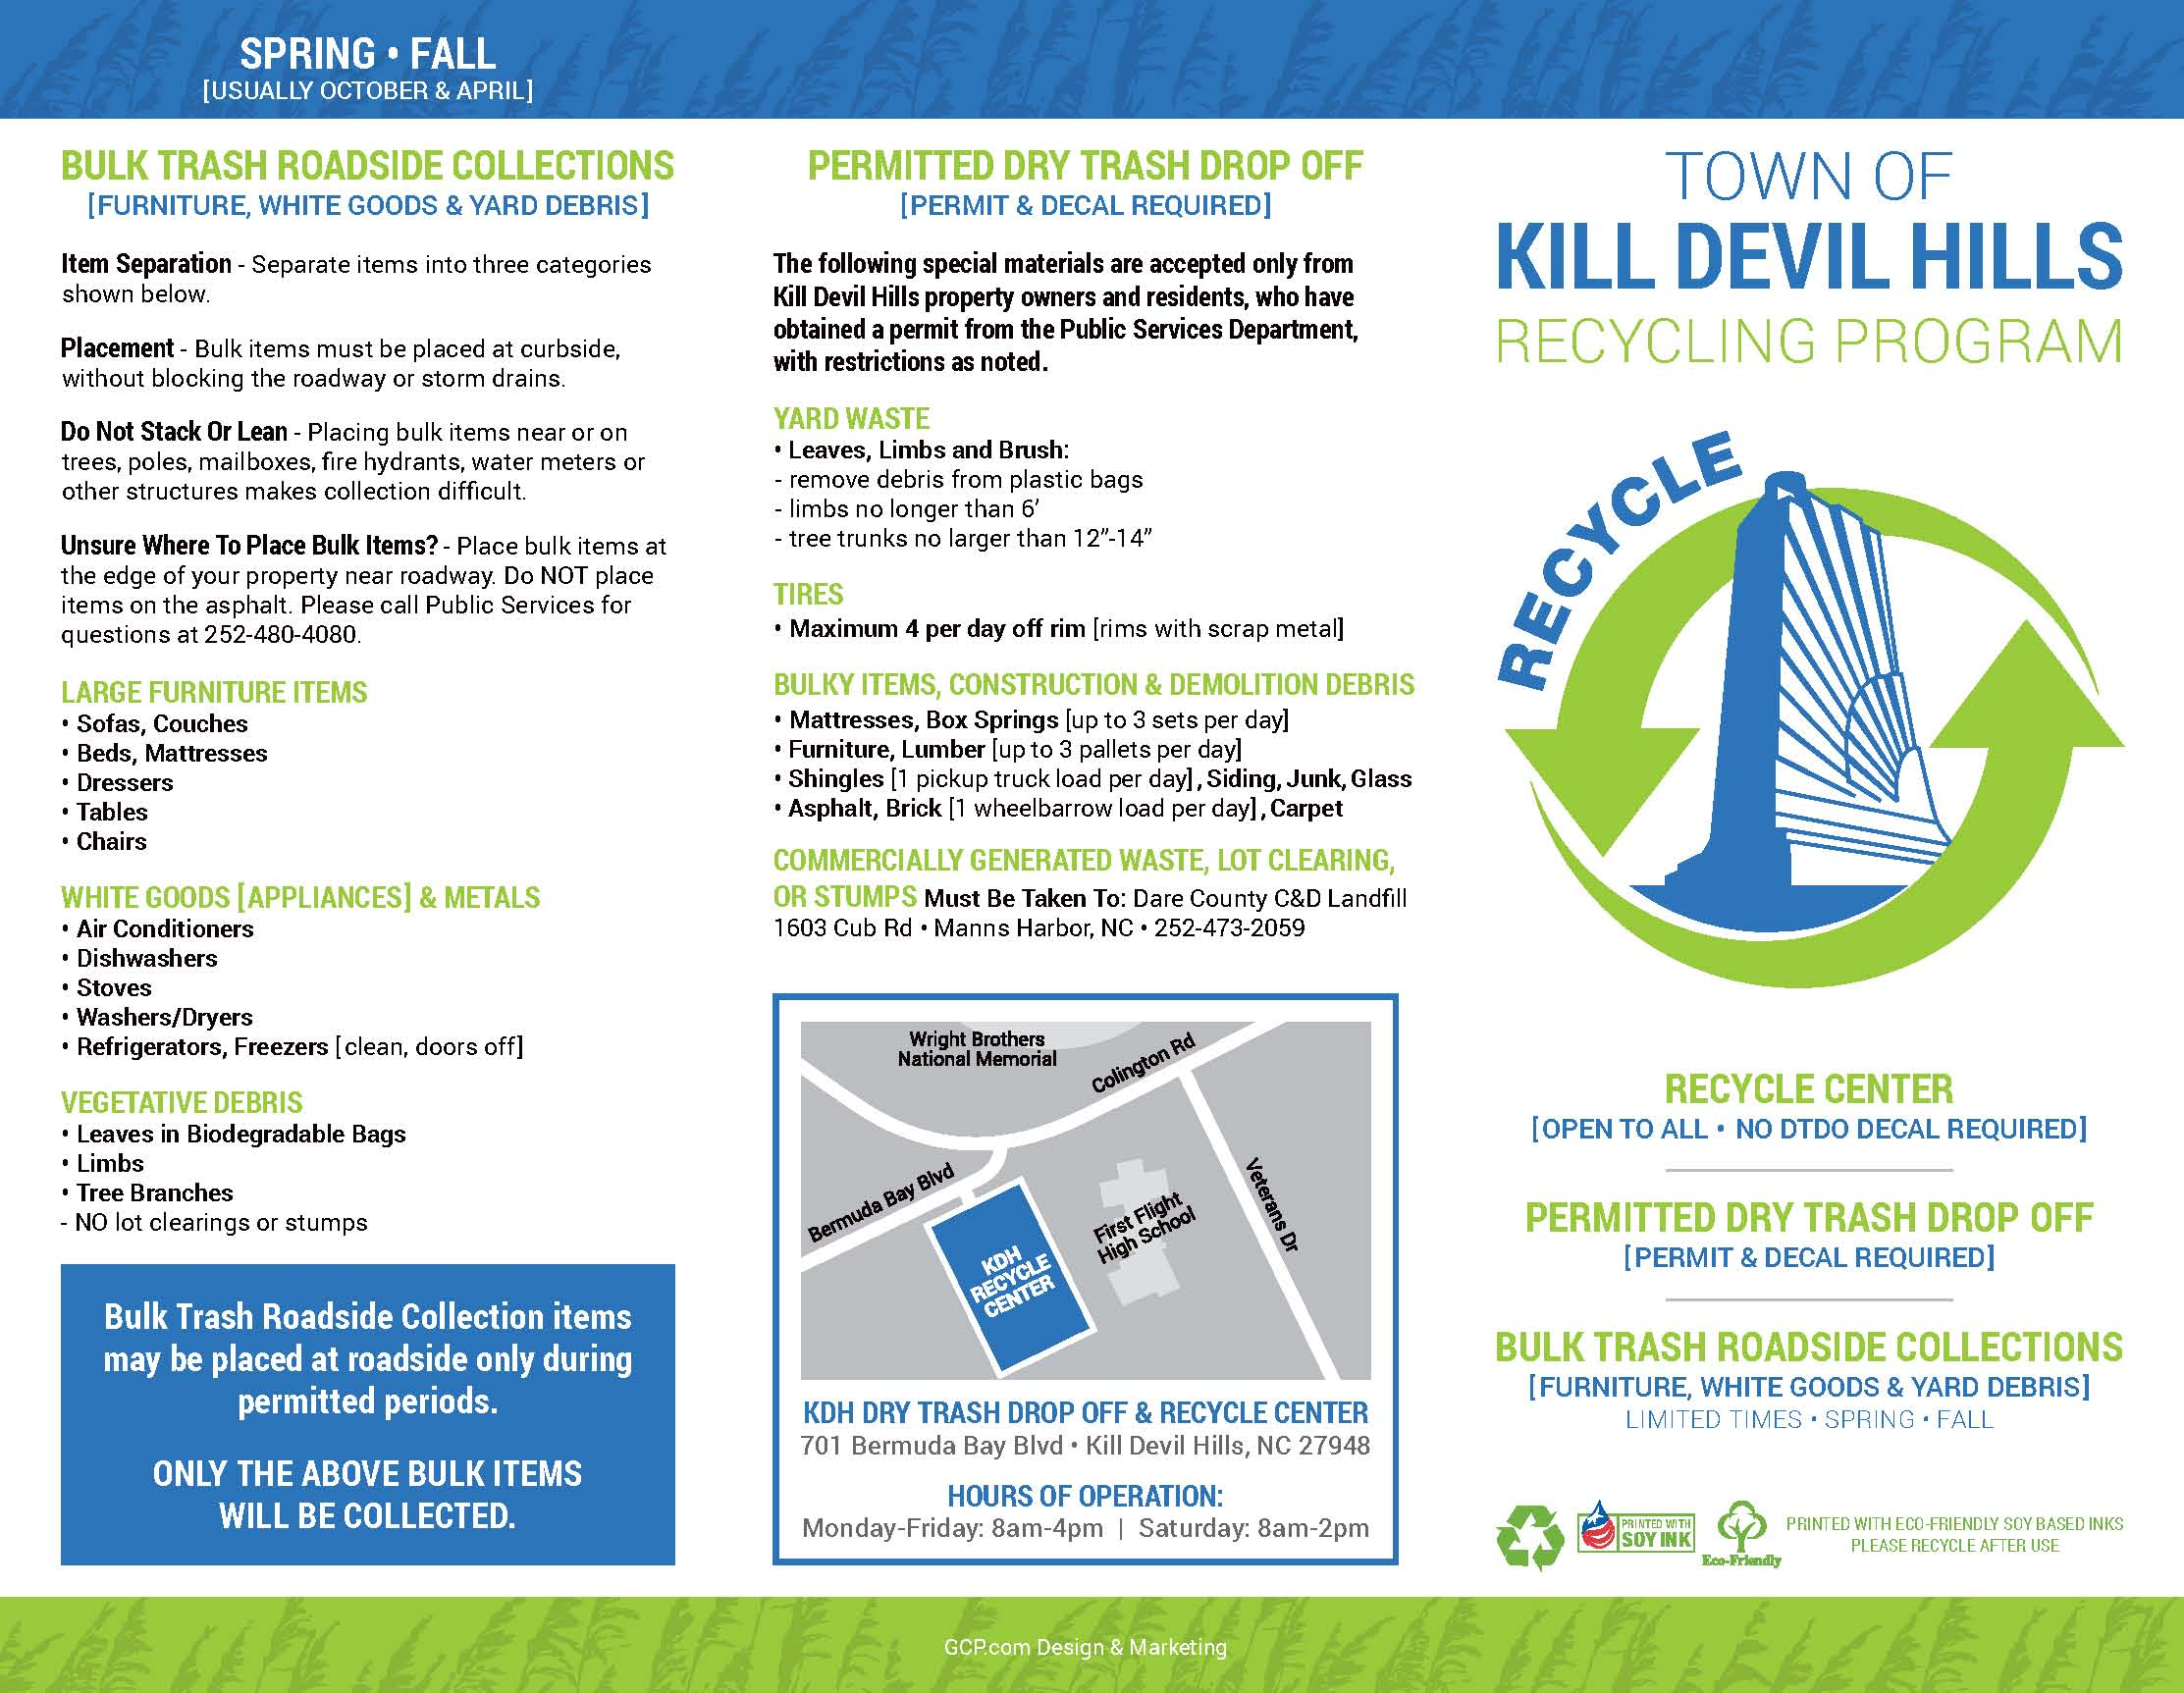 KDH-brochure-8.5inx11in-trifold-outside-PROOF3